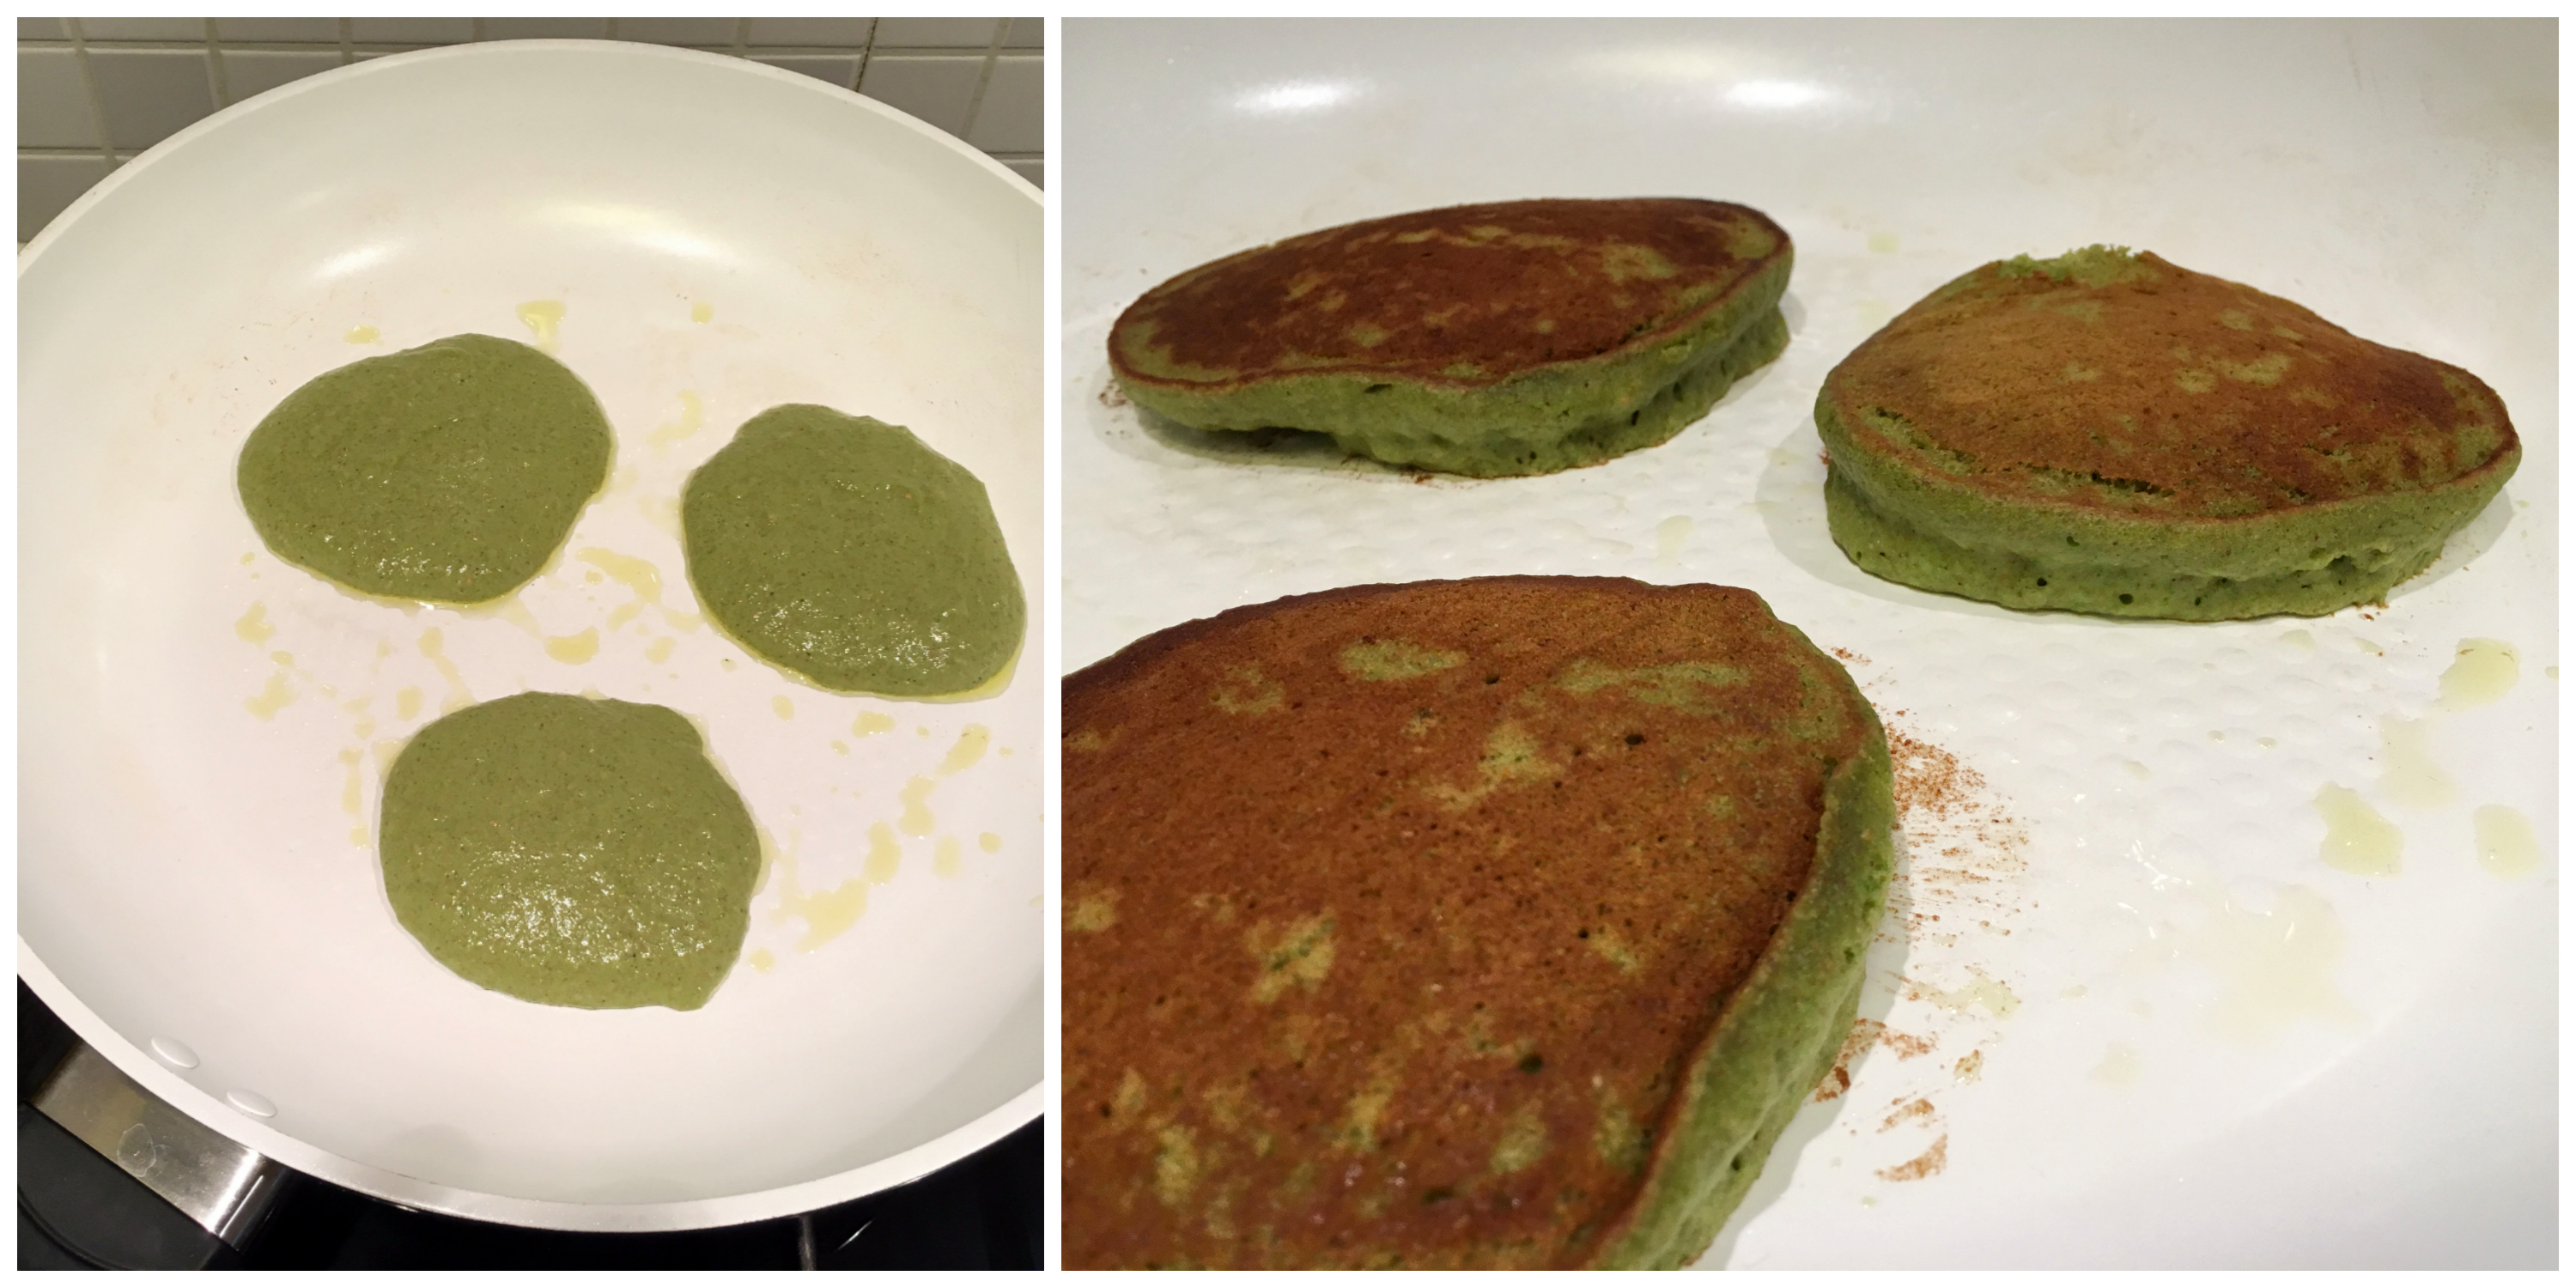 Fluffy Vegan Green Monster Kale Pancakes in the making